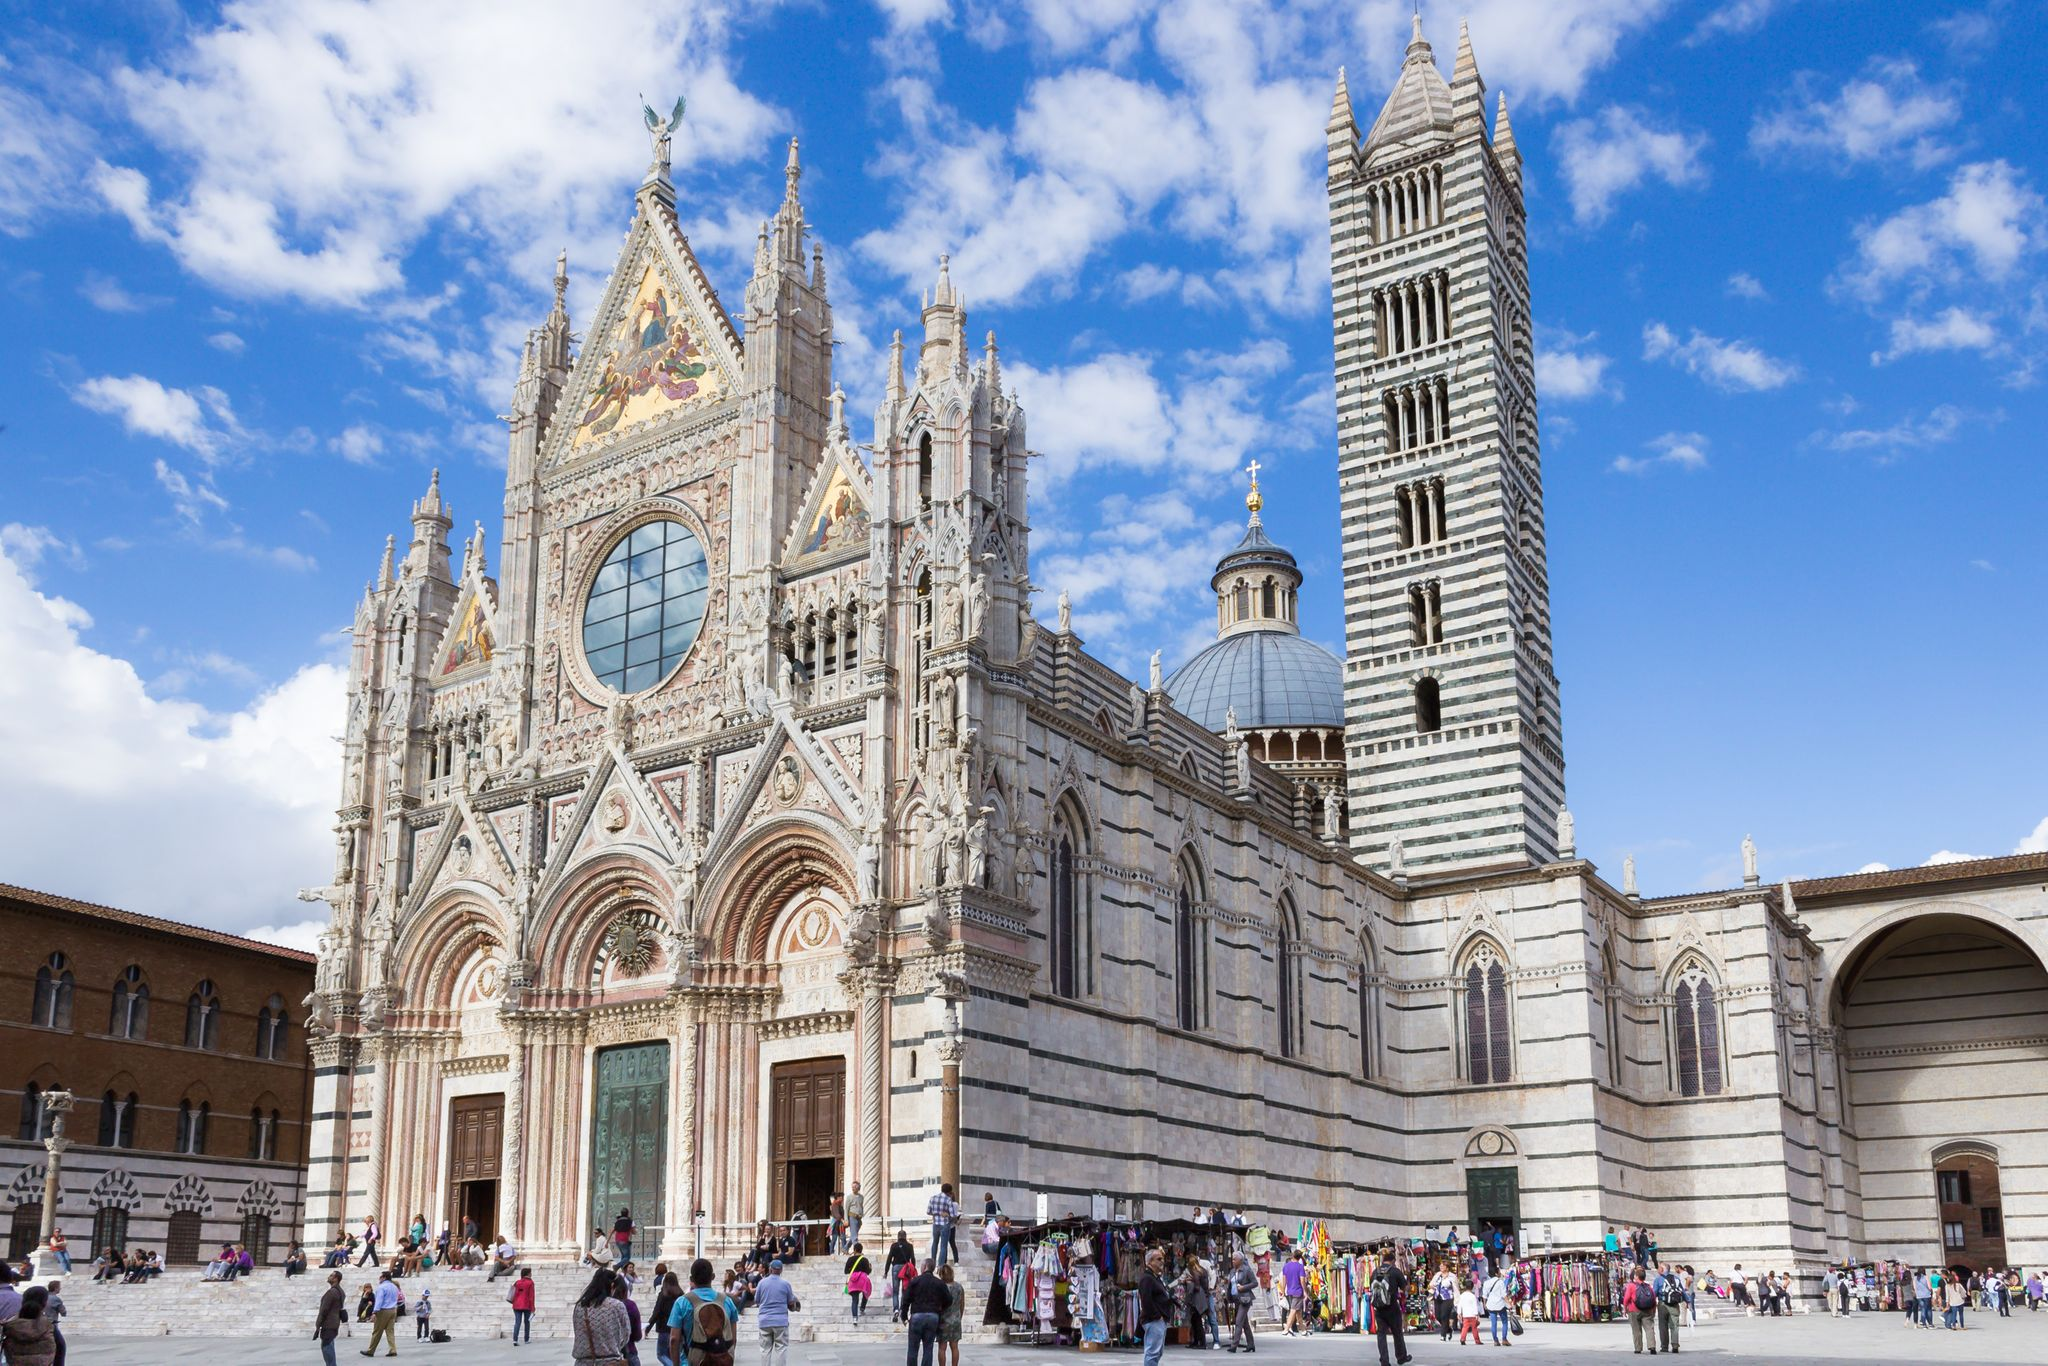 the beautiful Siena Cathedral